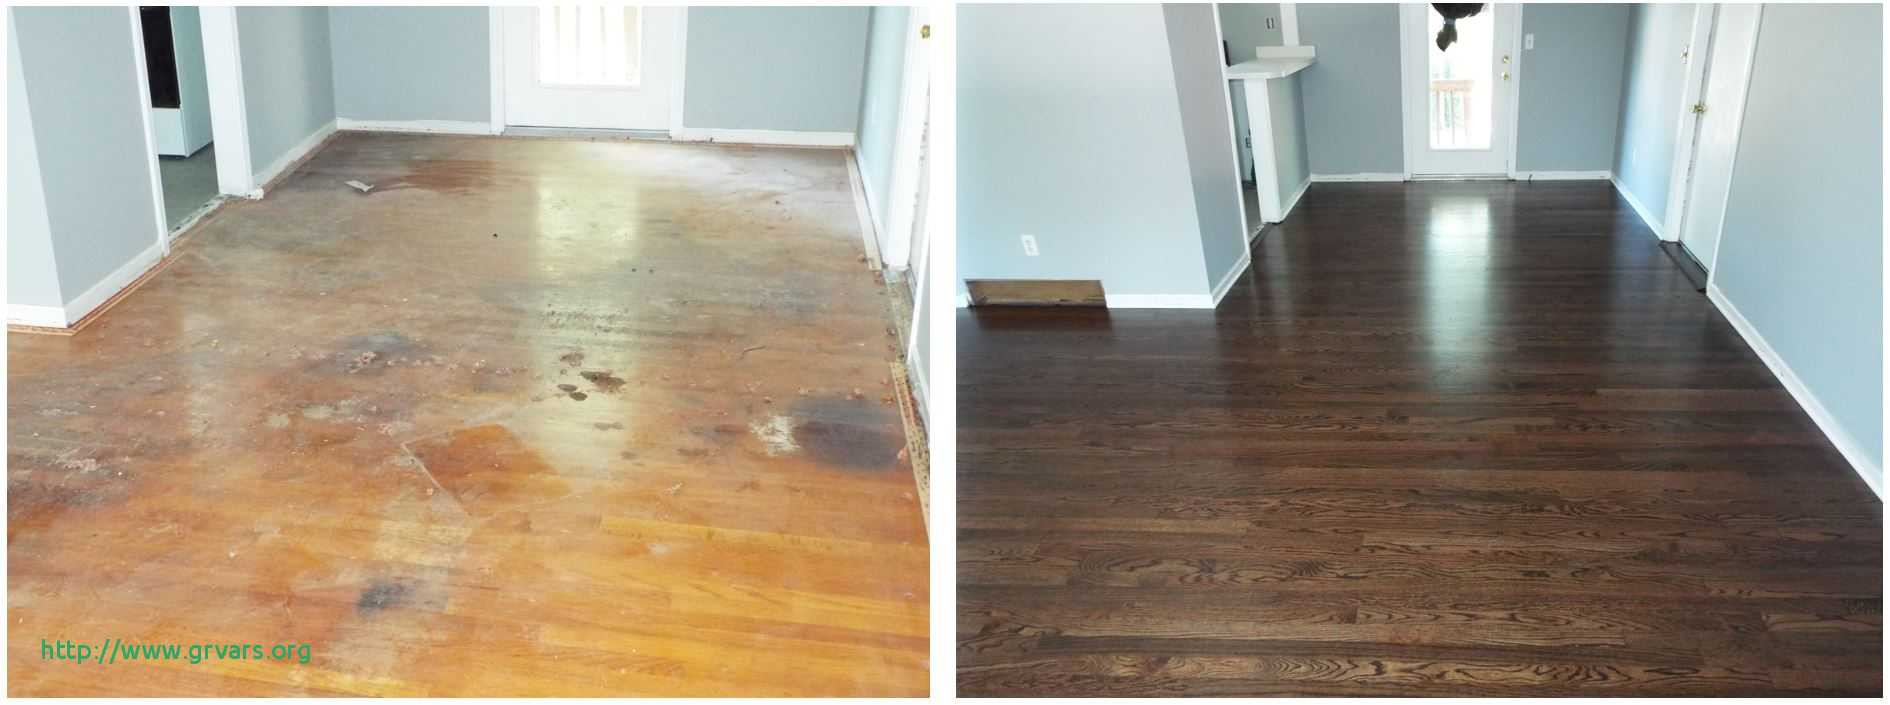 hardwood floor refinishing supplies near me of 21 impressionnant hardwood floor refinishing monmouth county nj throughout hardwood floor refinishing monmouth county nj frais hardwood floor refinishing monmouth county nj hardwood floor